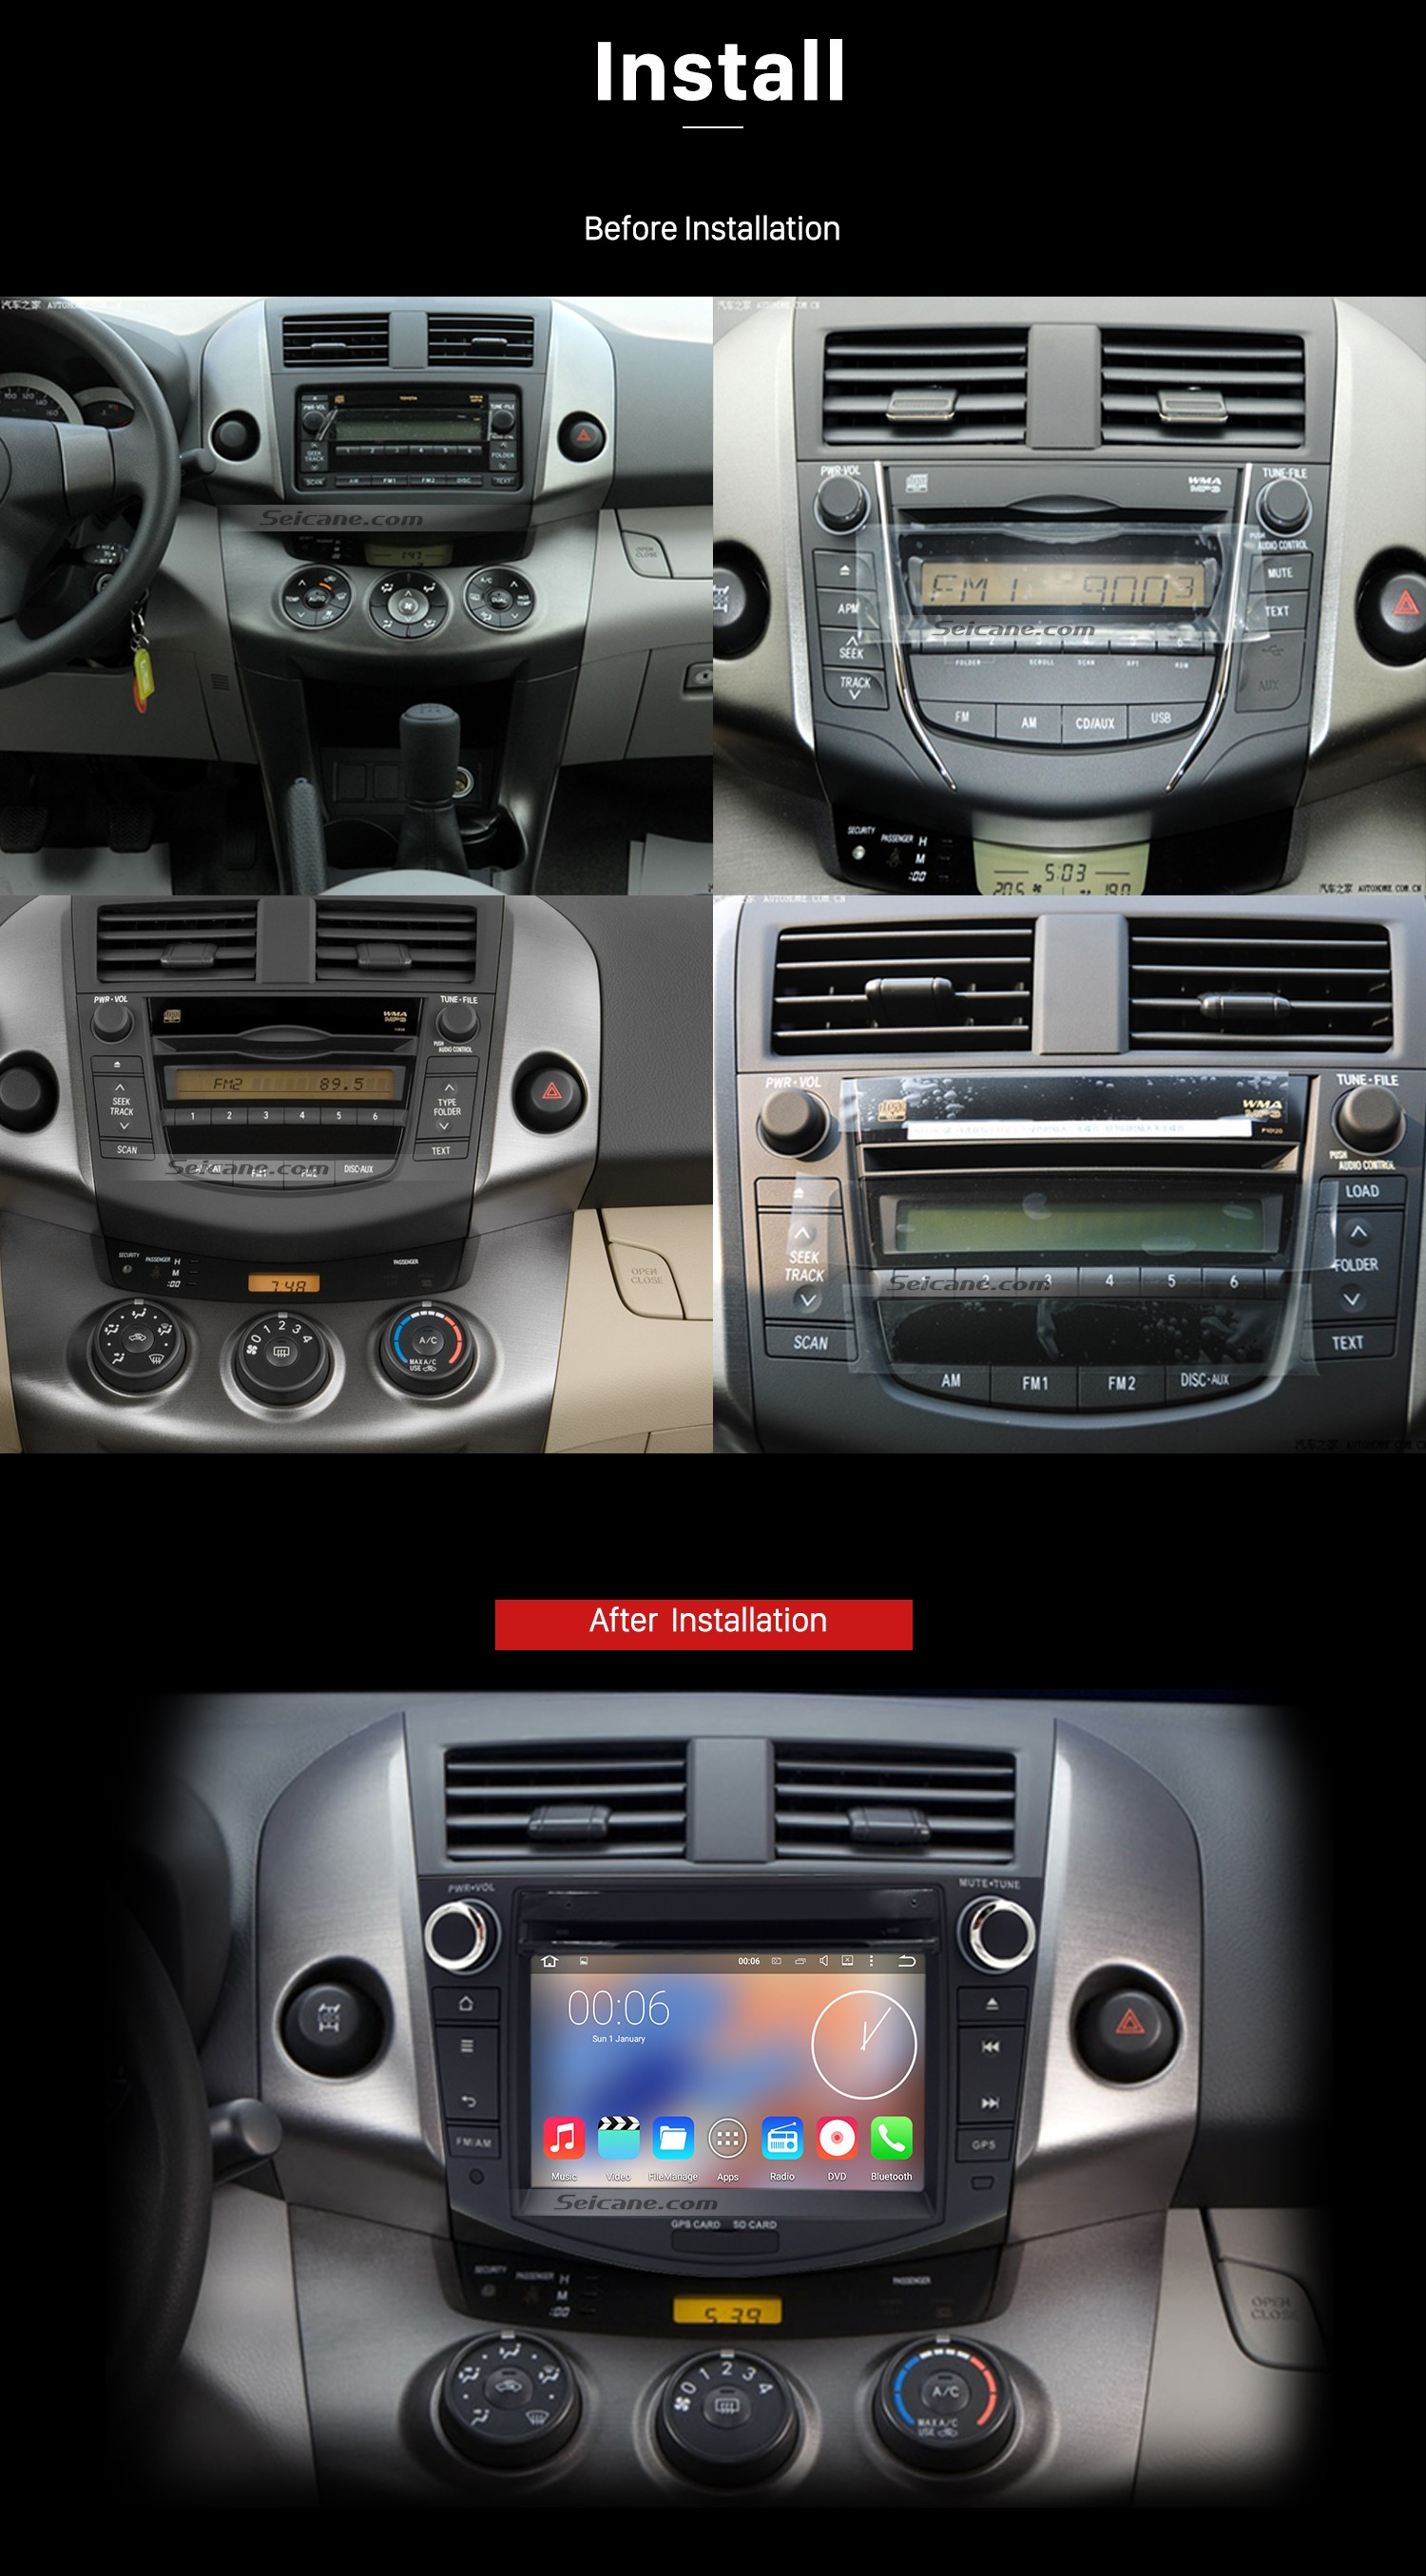 2006-2012 TOYOTA RAV4 Car Radio installation | car dvd player blog ...